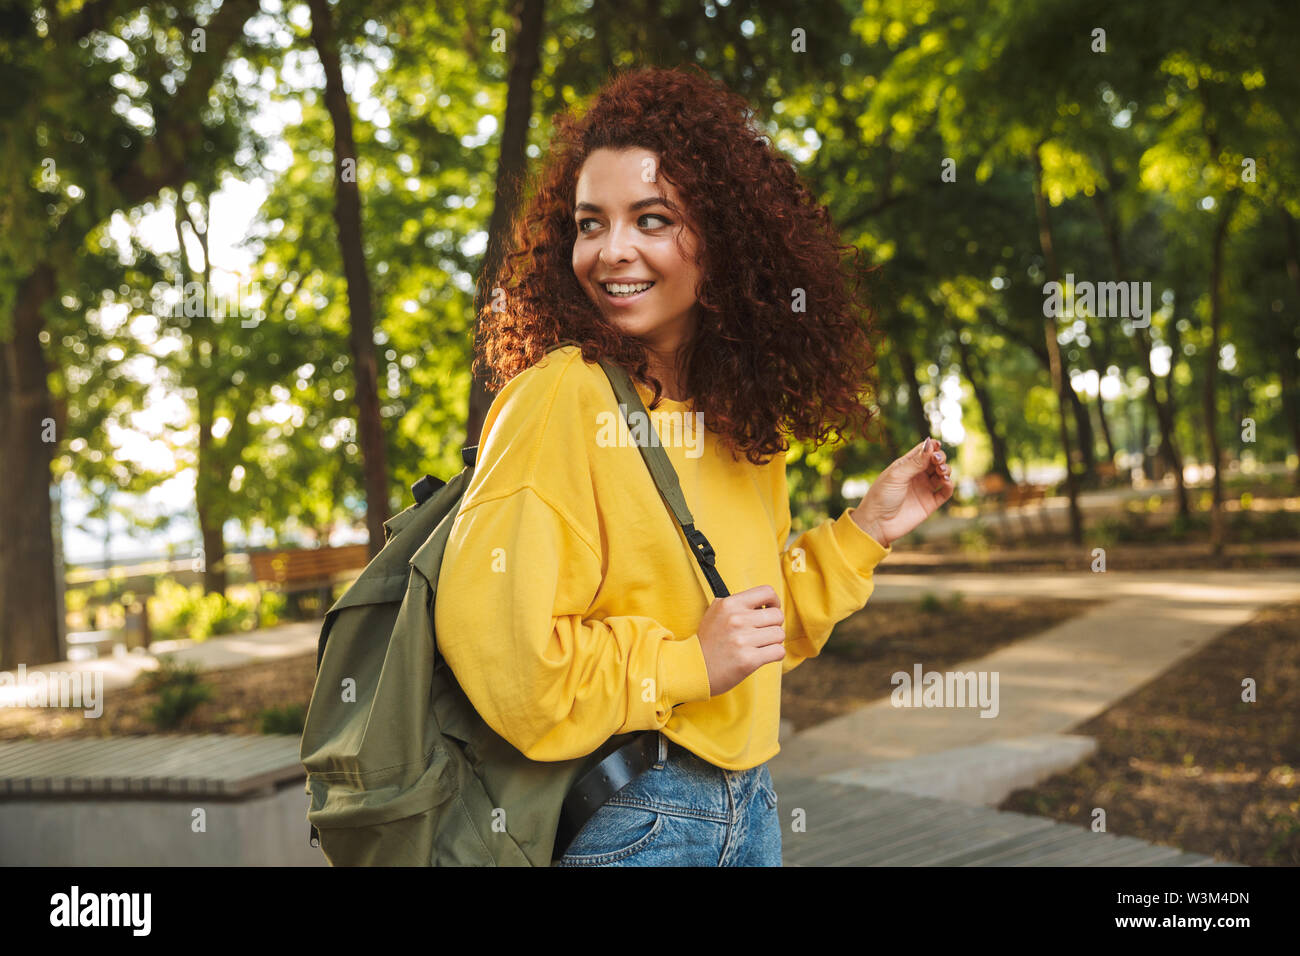 Photo of a smiling young beautiful curly student girl outdoors in nature park walking with backpack. - Stock Image